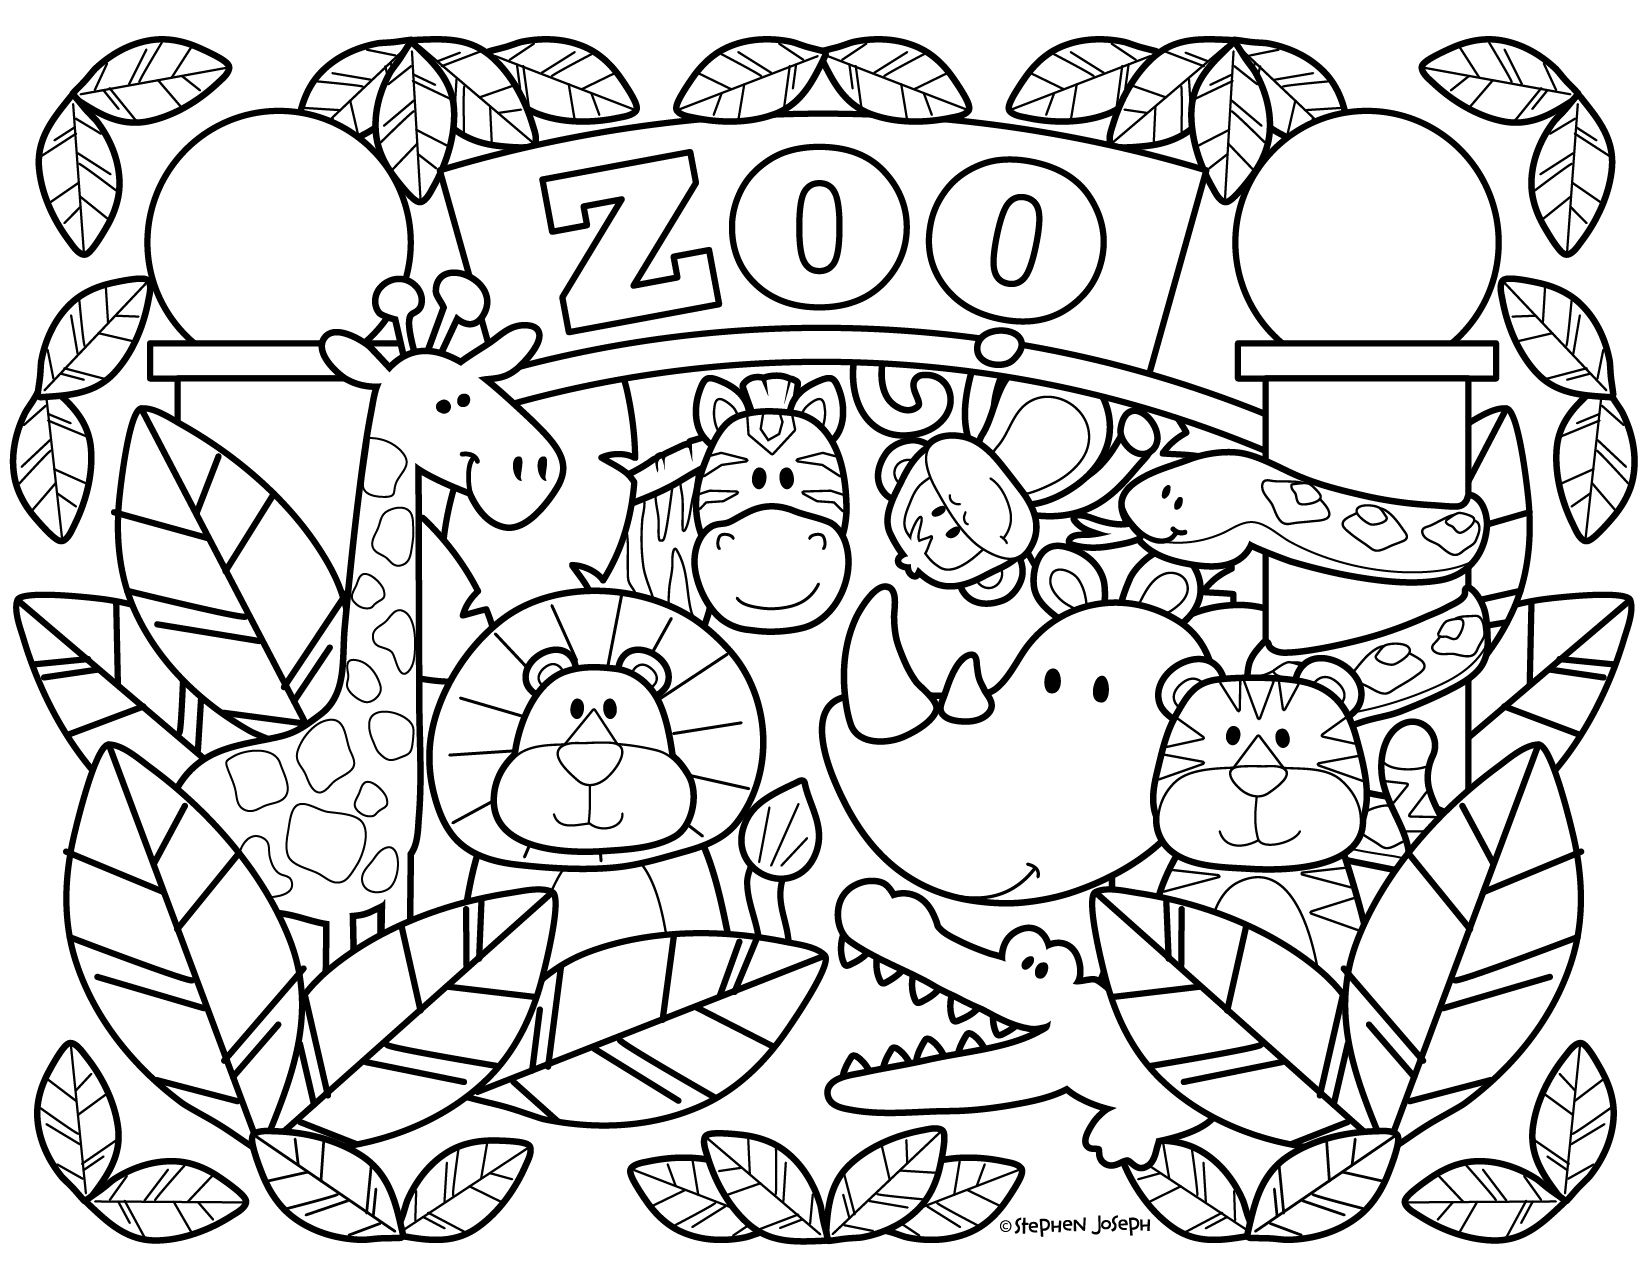 Zoo Coloring Pages Printable Free By Stephen Joseph Gifts Zoo Animal Coloring Pages Zoo Coloring Pages Farm Animal Coloring Pages